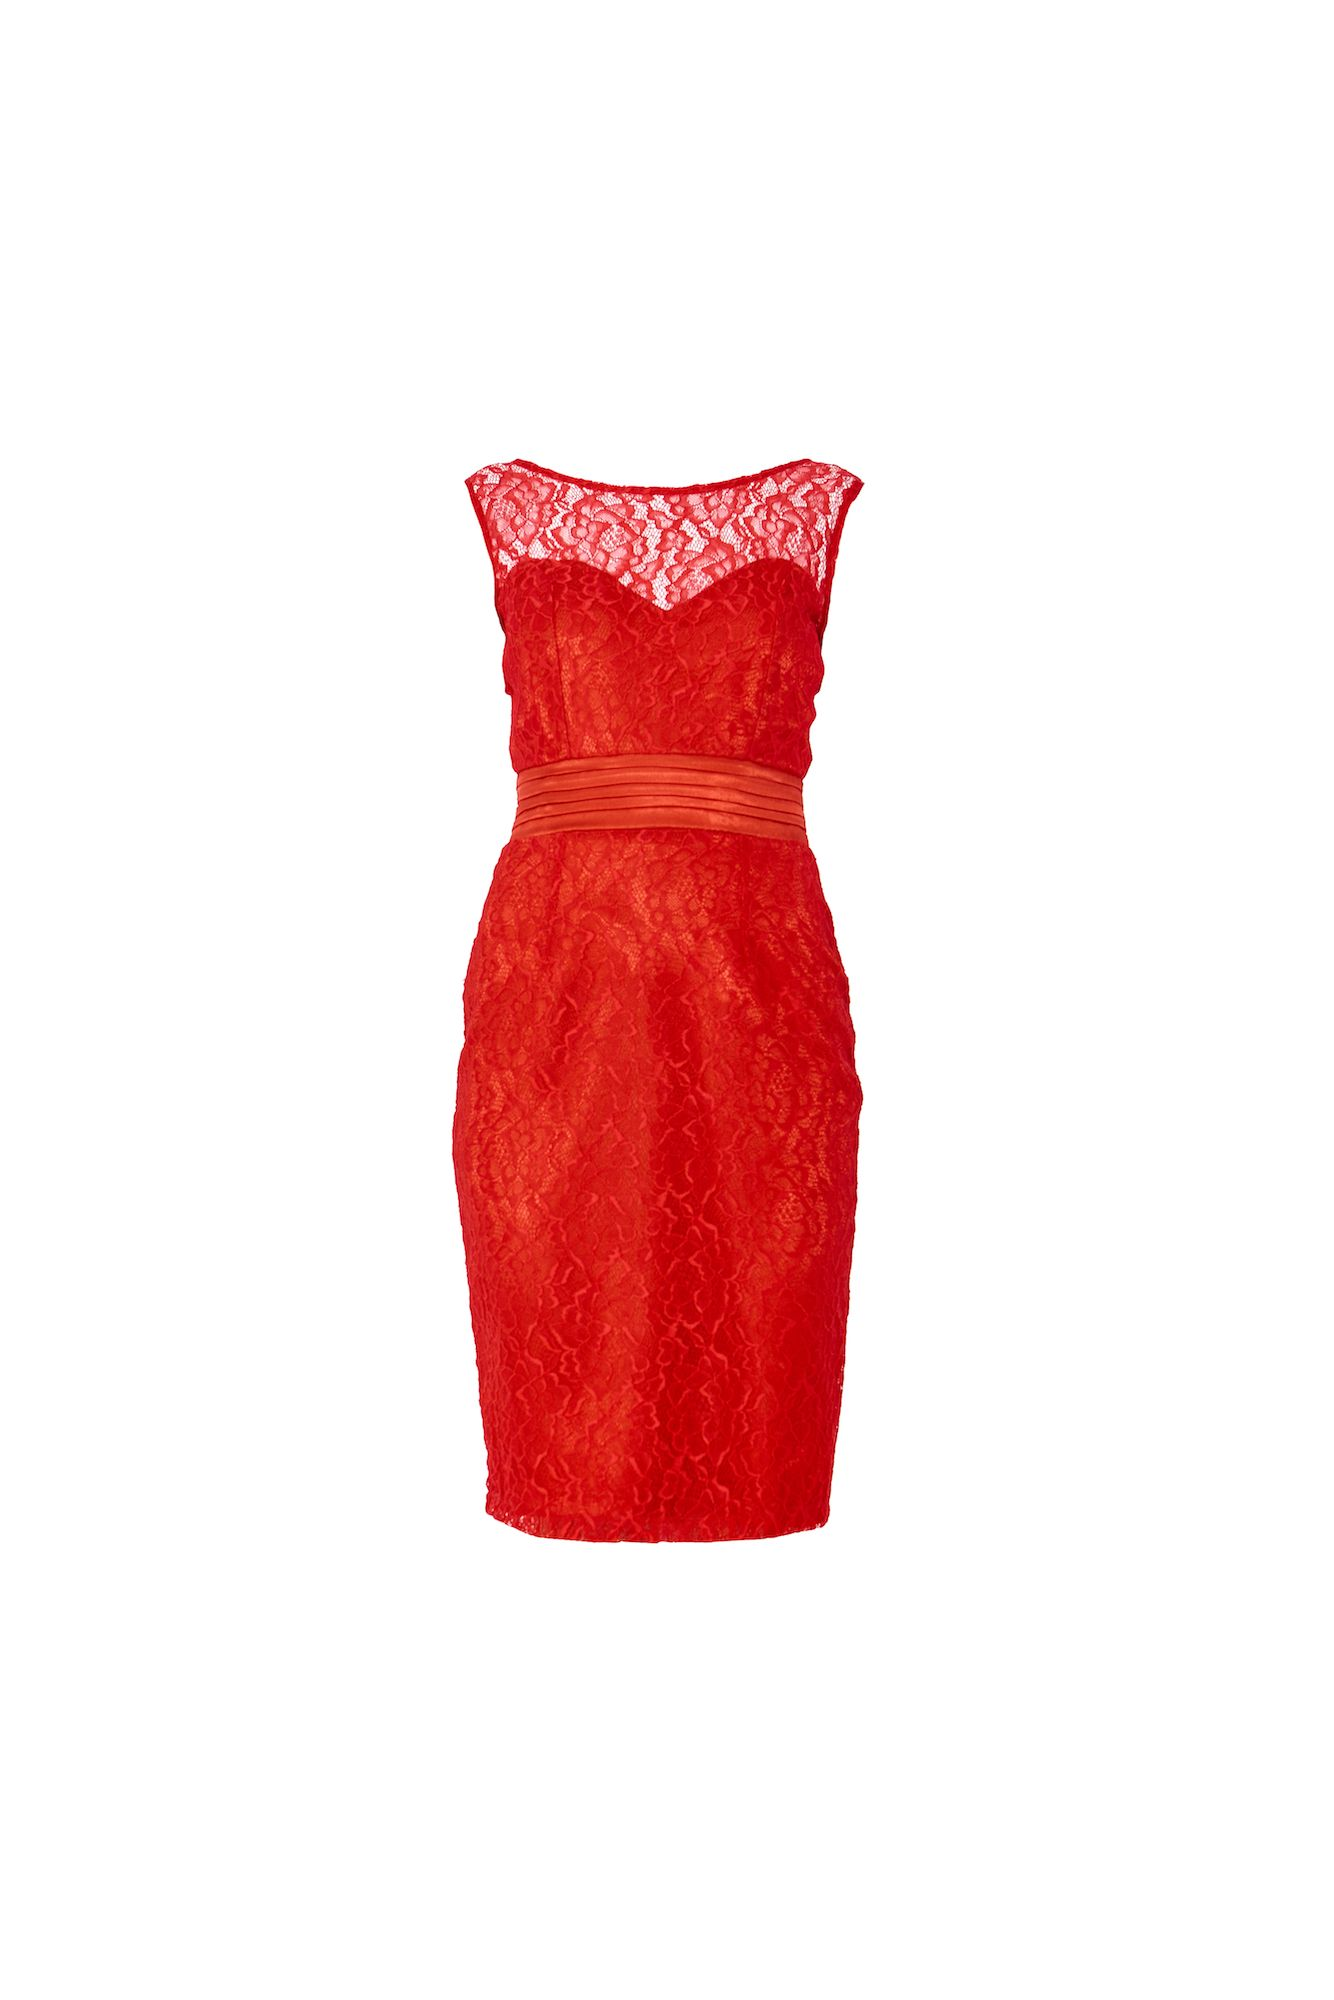 MAIOCCI Collection MAIOCCI Collection Lace Evening Dress, Red